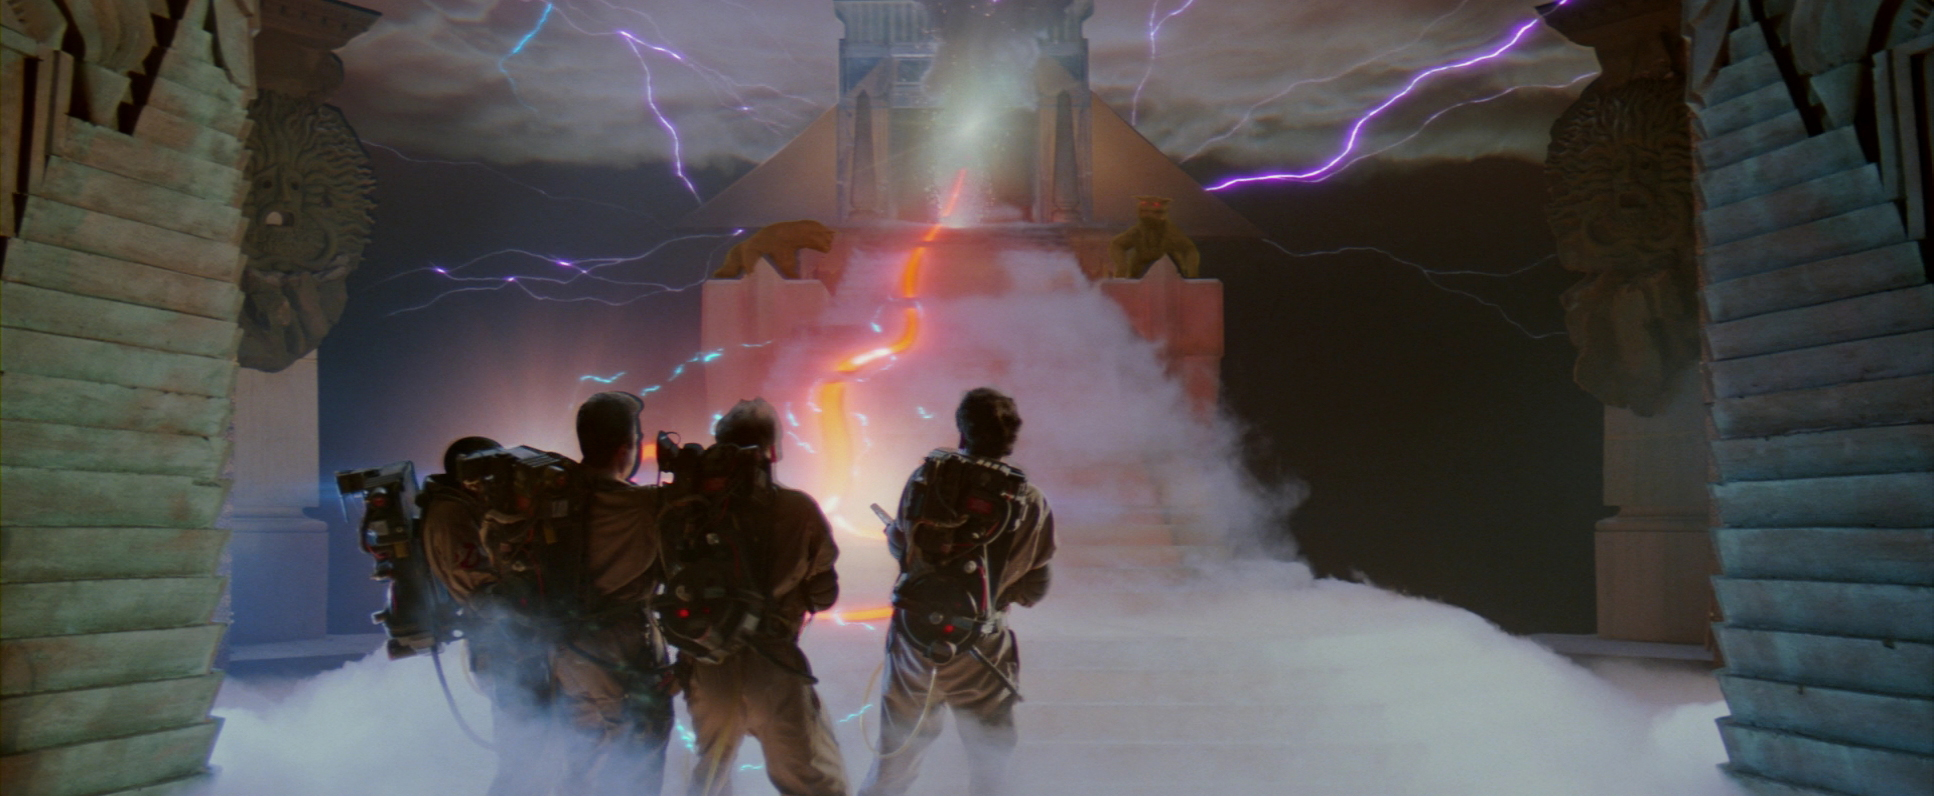 ghostbusters-3